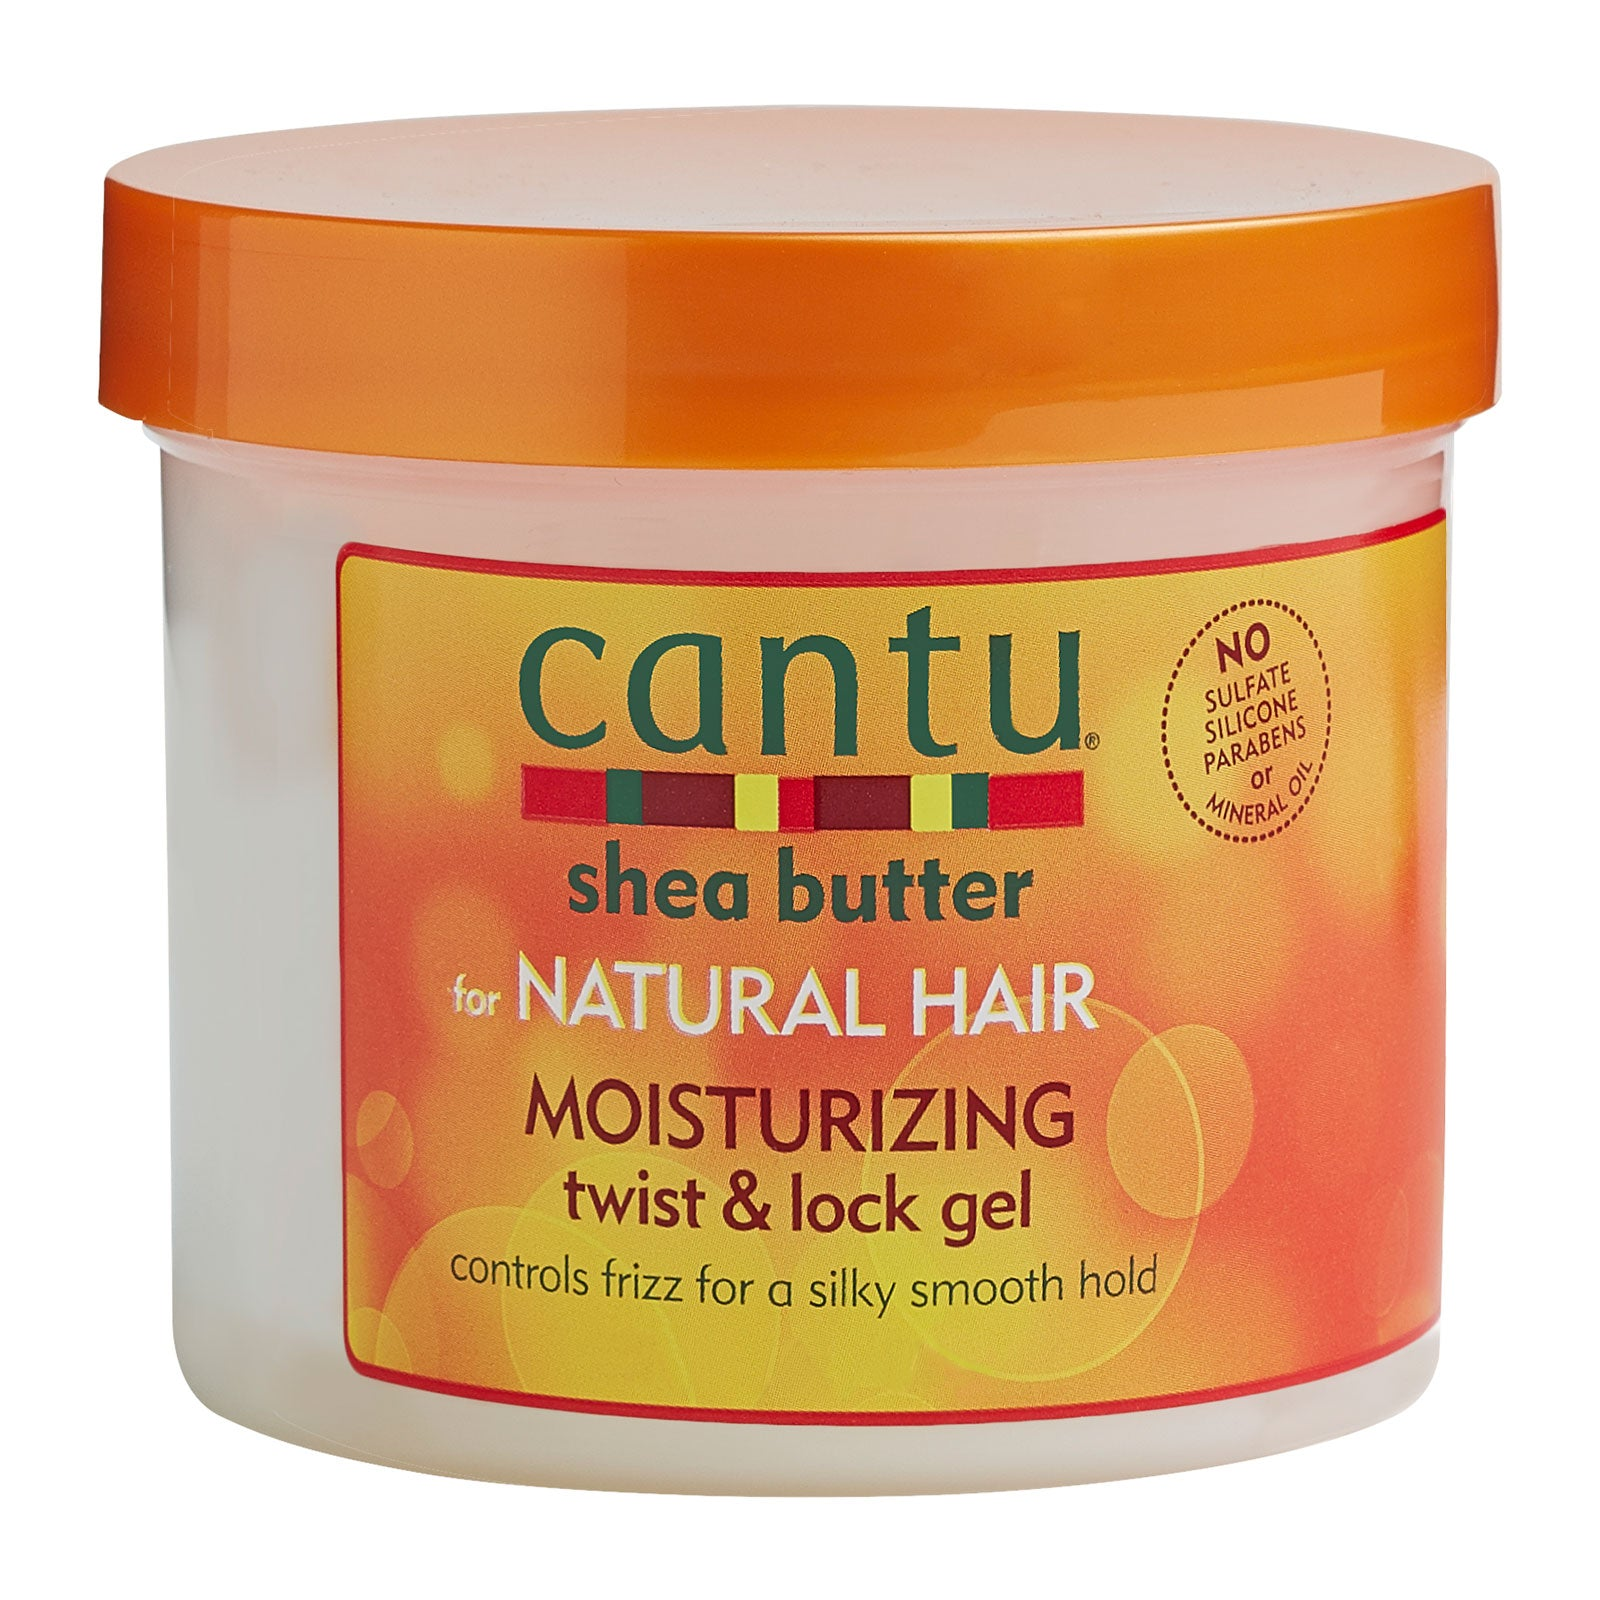 Cantu Shea Butter for Natural Hair Moisturizing Twist & Lock Gel 453g